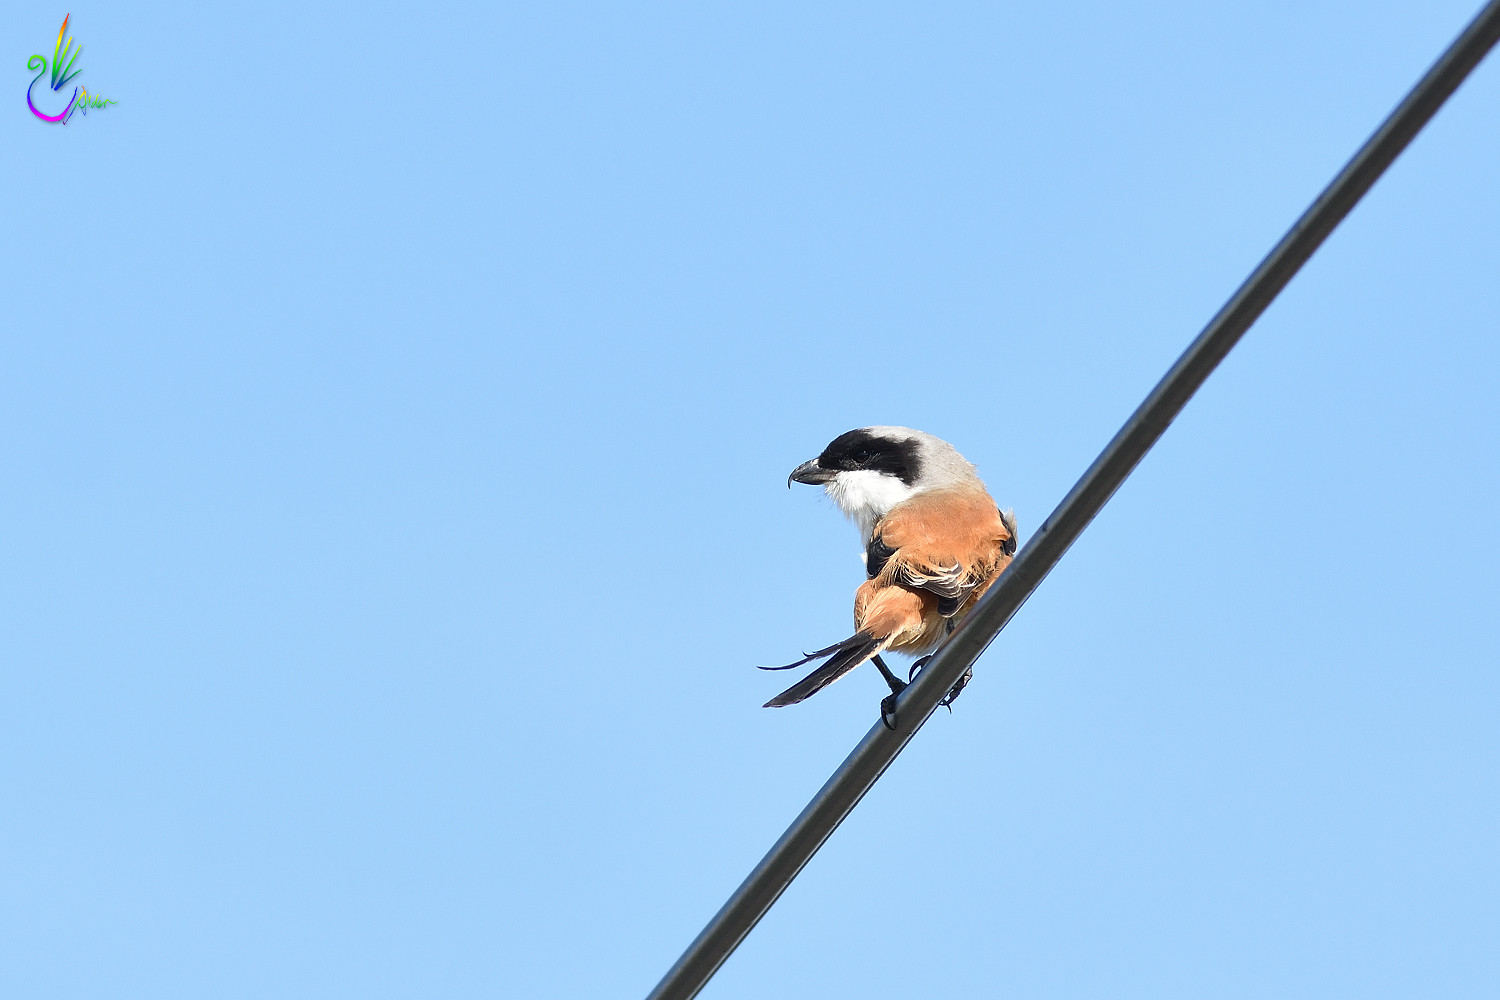 Long-tailed_Shrike_9585